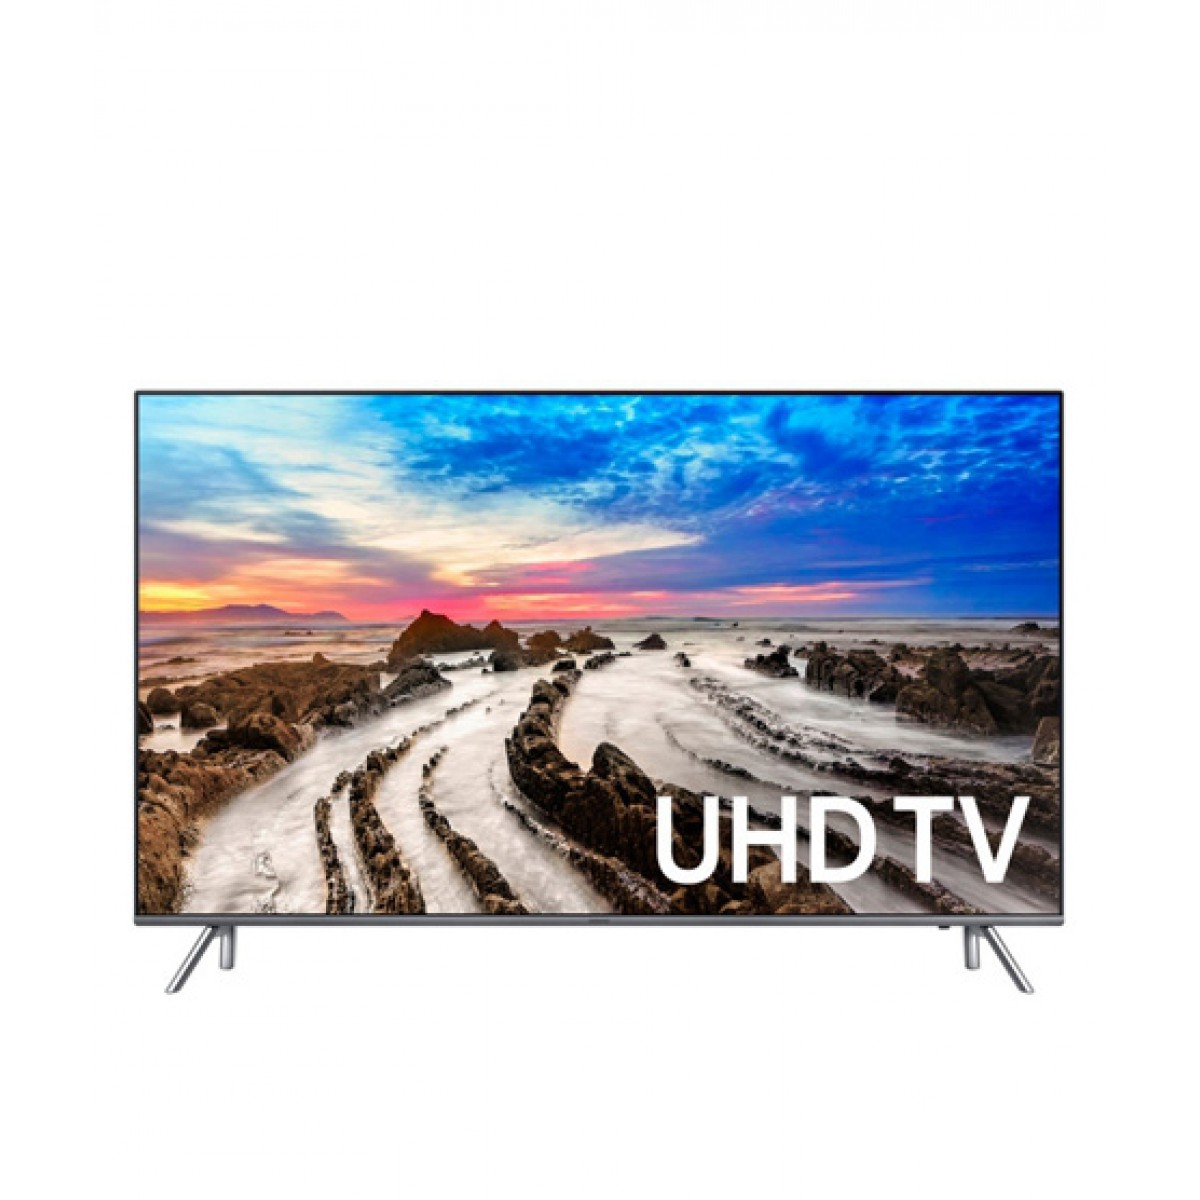 Samsung 75 Inch 75MU7000 LED TV